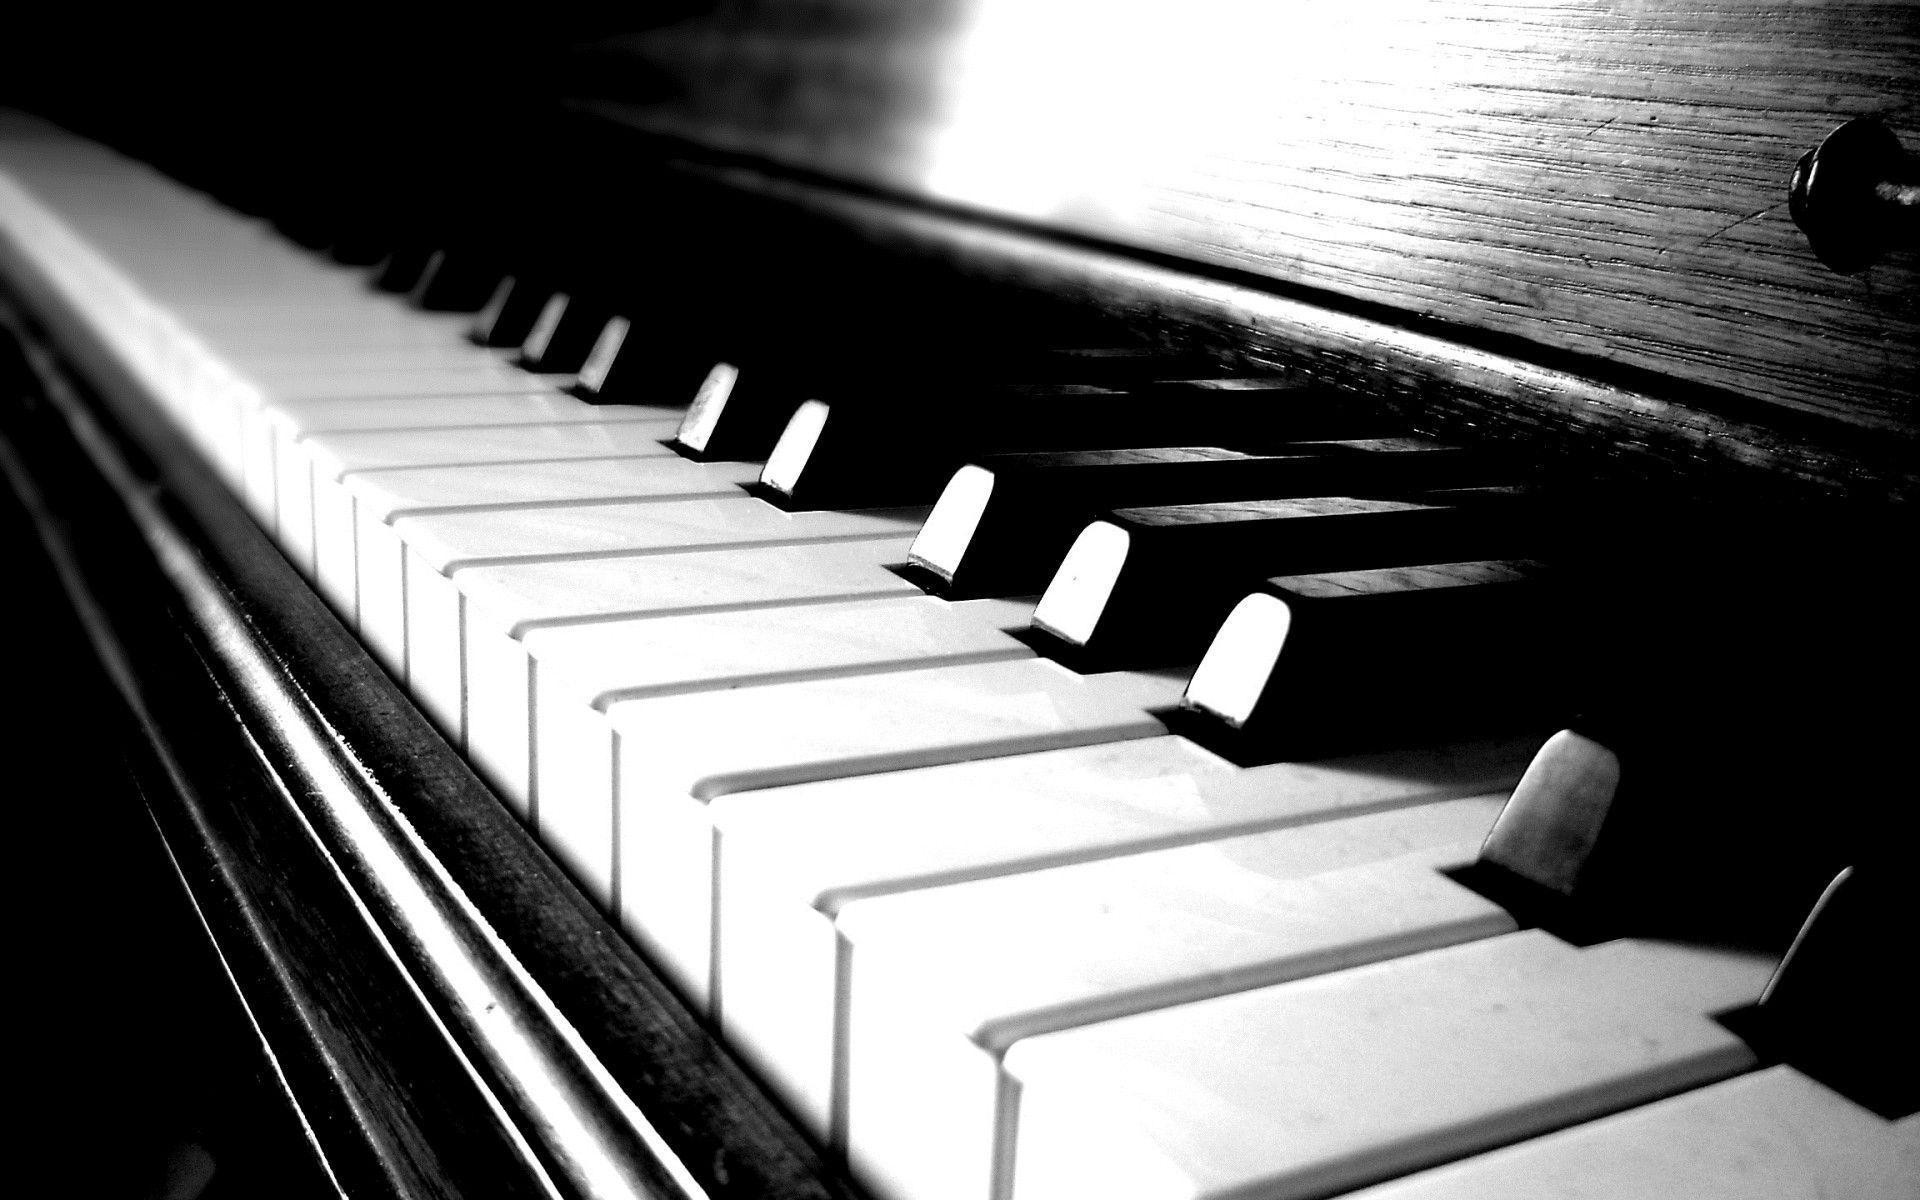 1920x1200 Grand Piano Wallpaper Hd Desktop 9 HD Wallpapers | lzamgs.com